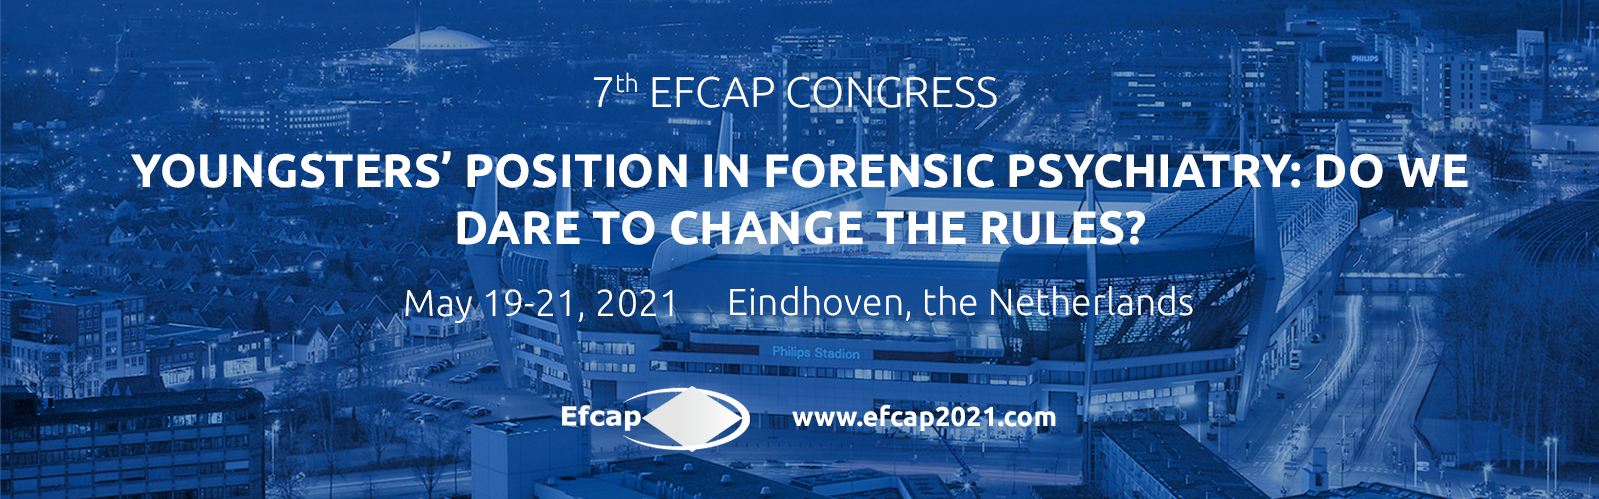 efcap-banner-wide-centered-second-new-date.jpg